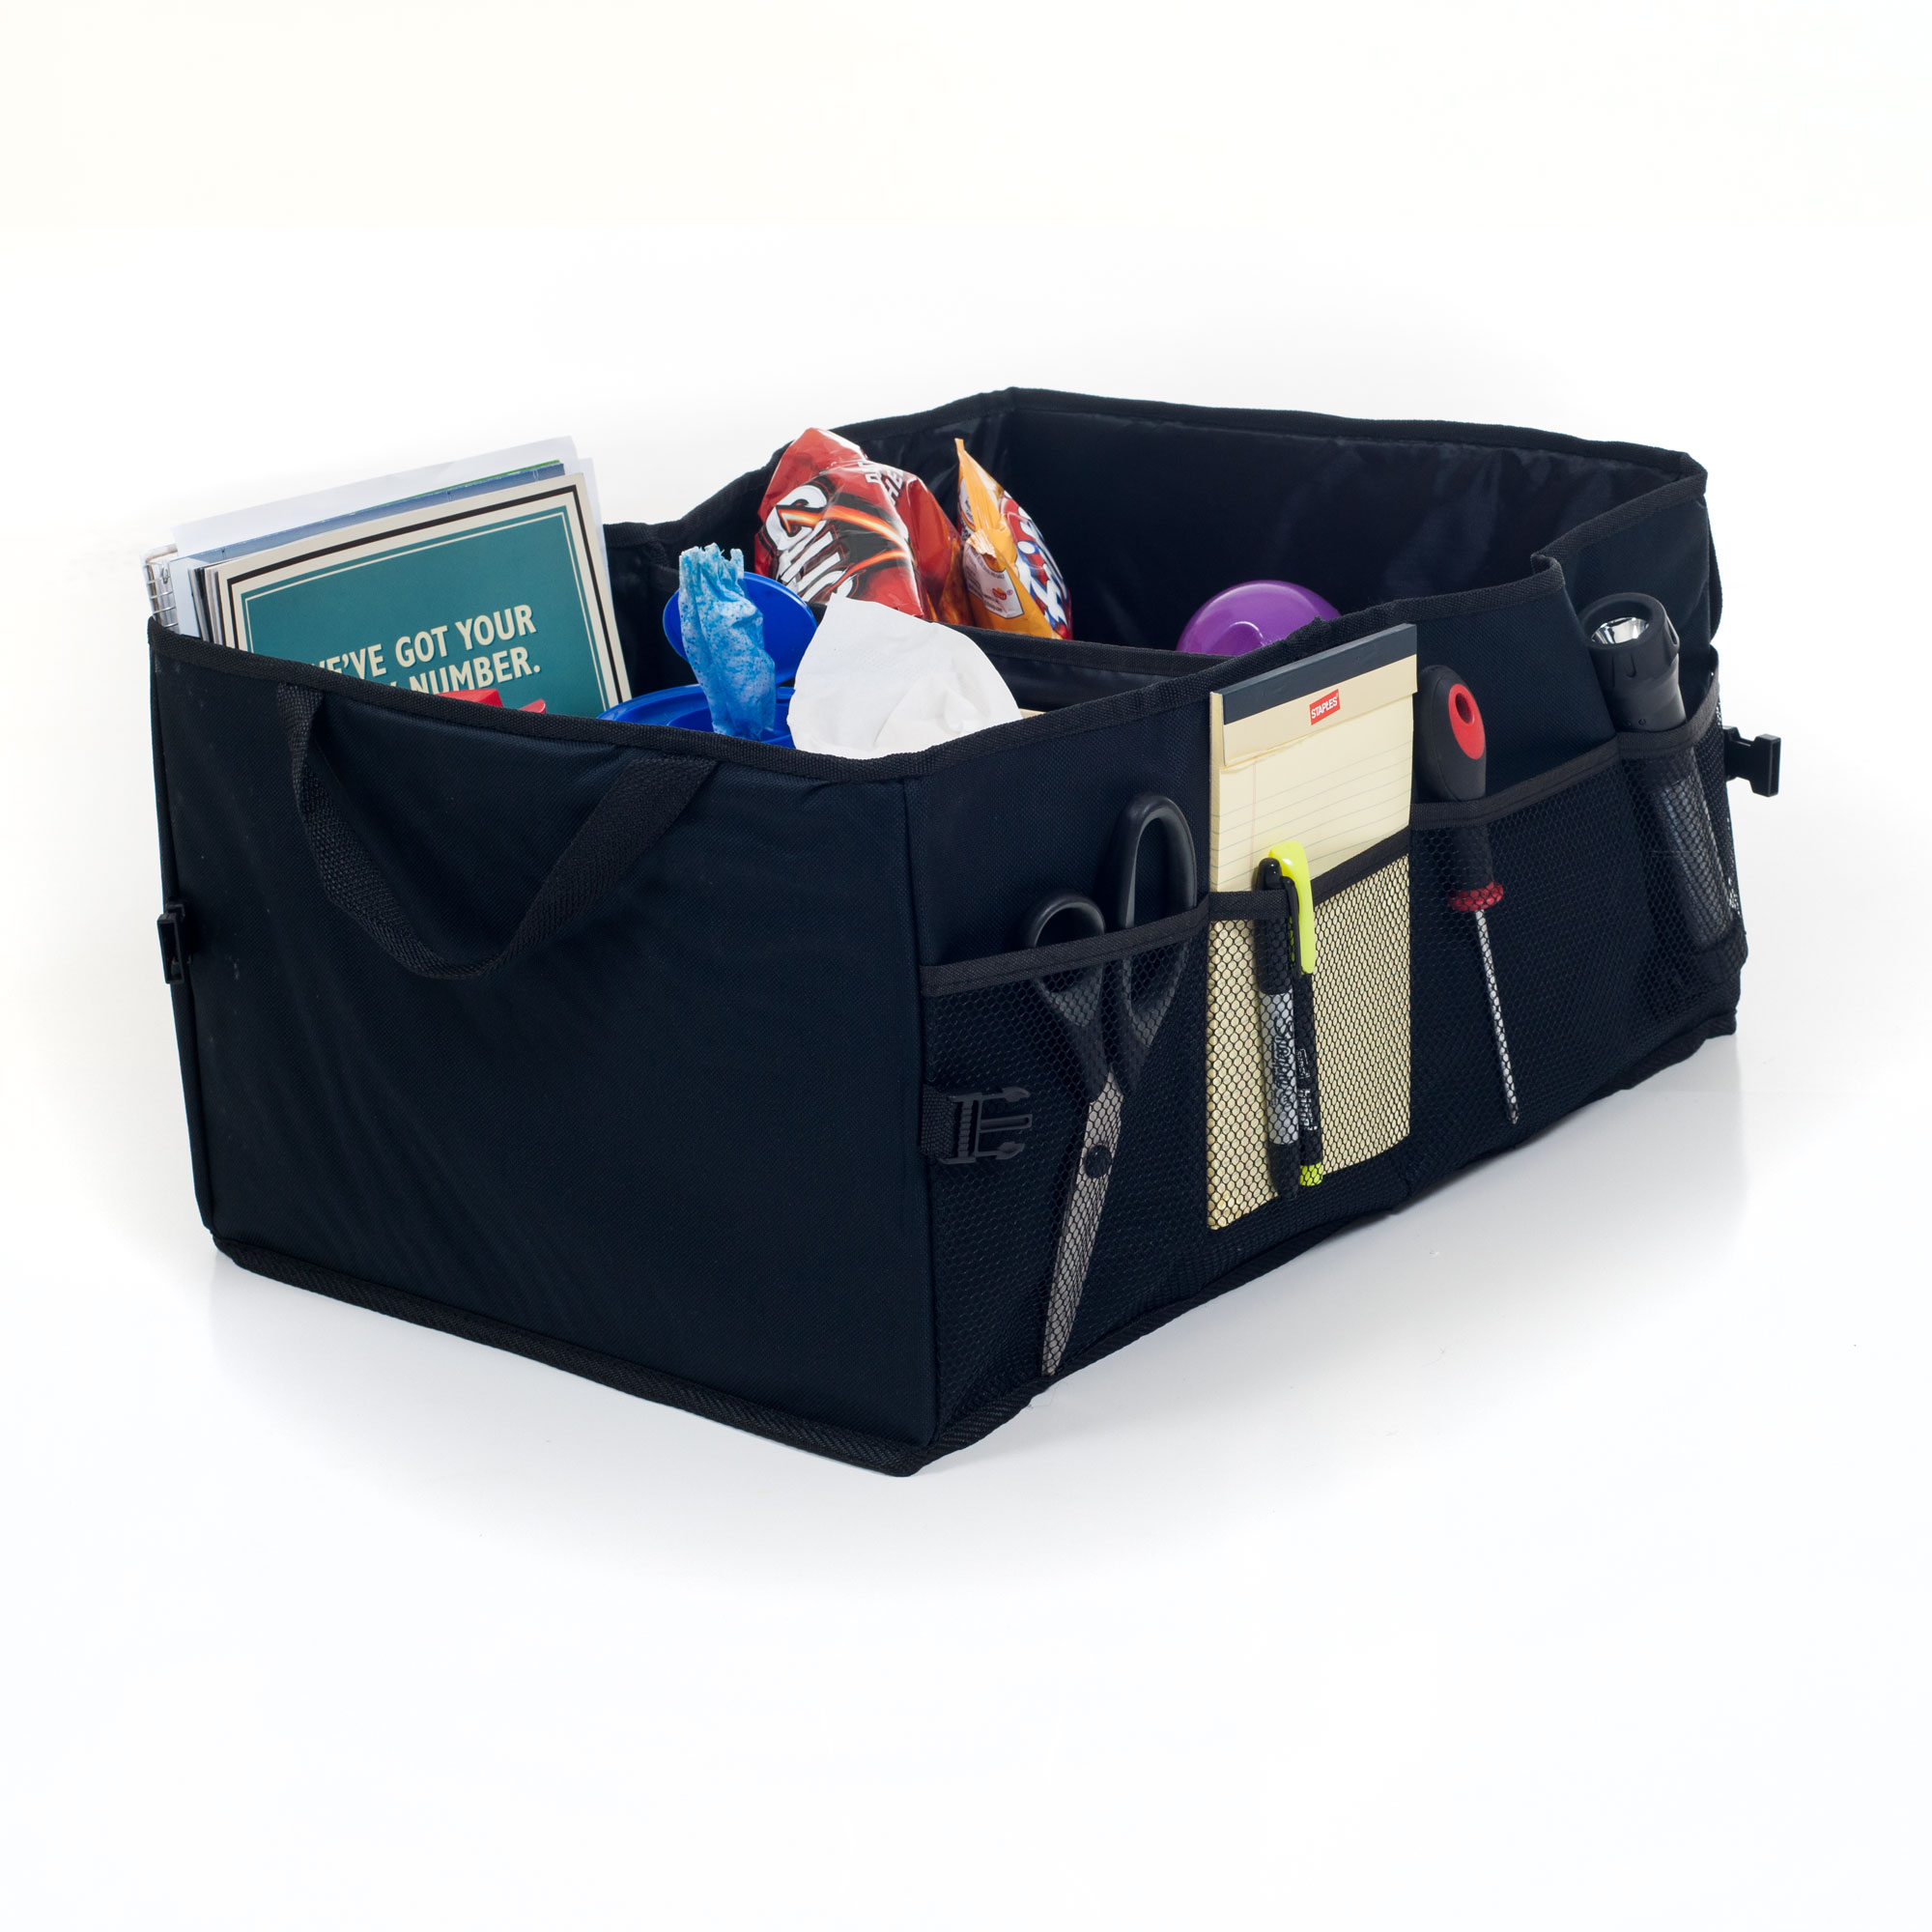 Trunk Organizer - Collapsible Storage Bin for Car, Truck or SUV - Divided Catchall with Mesh Pockets for Groceries, Emergency Items, Cargo by Stalwart